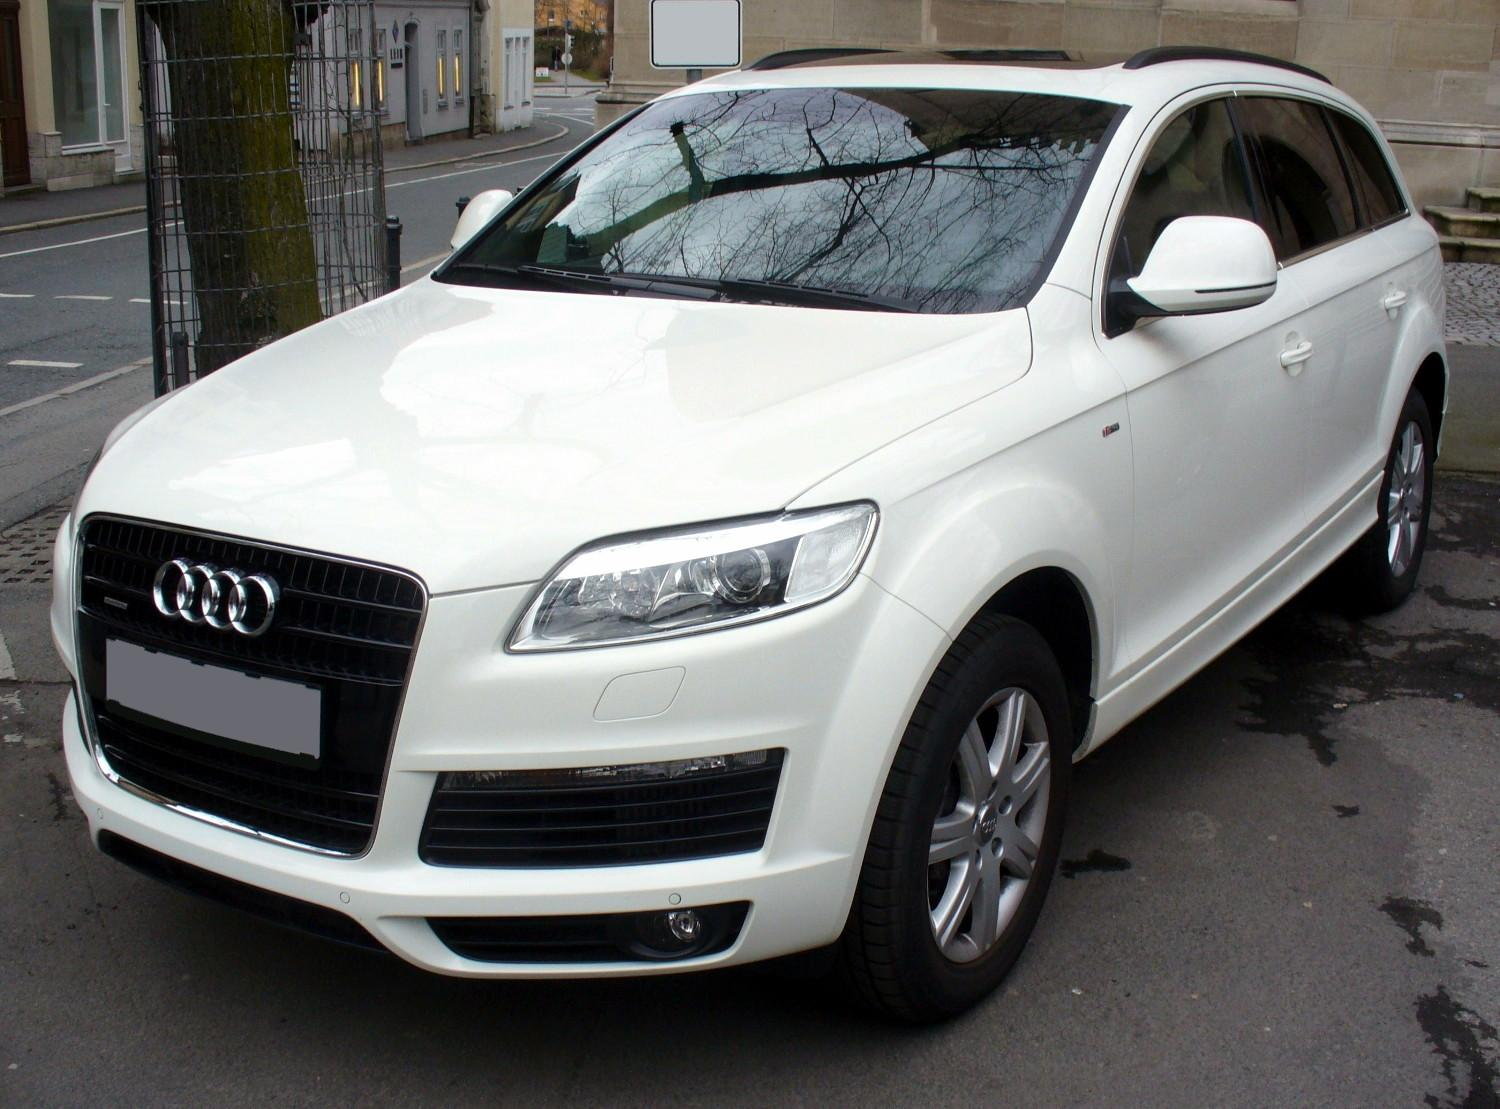 audi q7 3 0 tdi quattro tiptronic 1 jpg details of cars on details of. Black Bedroom Furniture Sets. Home Design Ideas